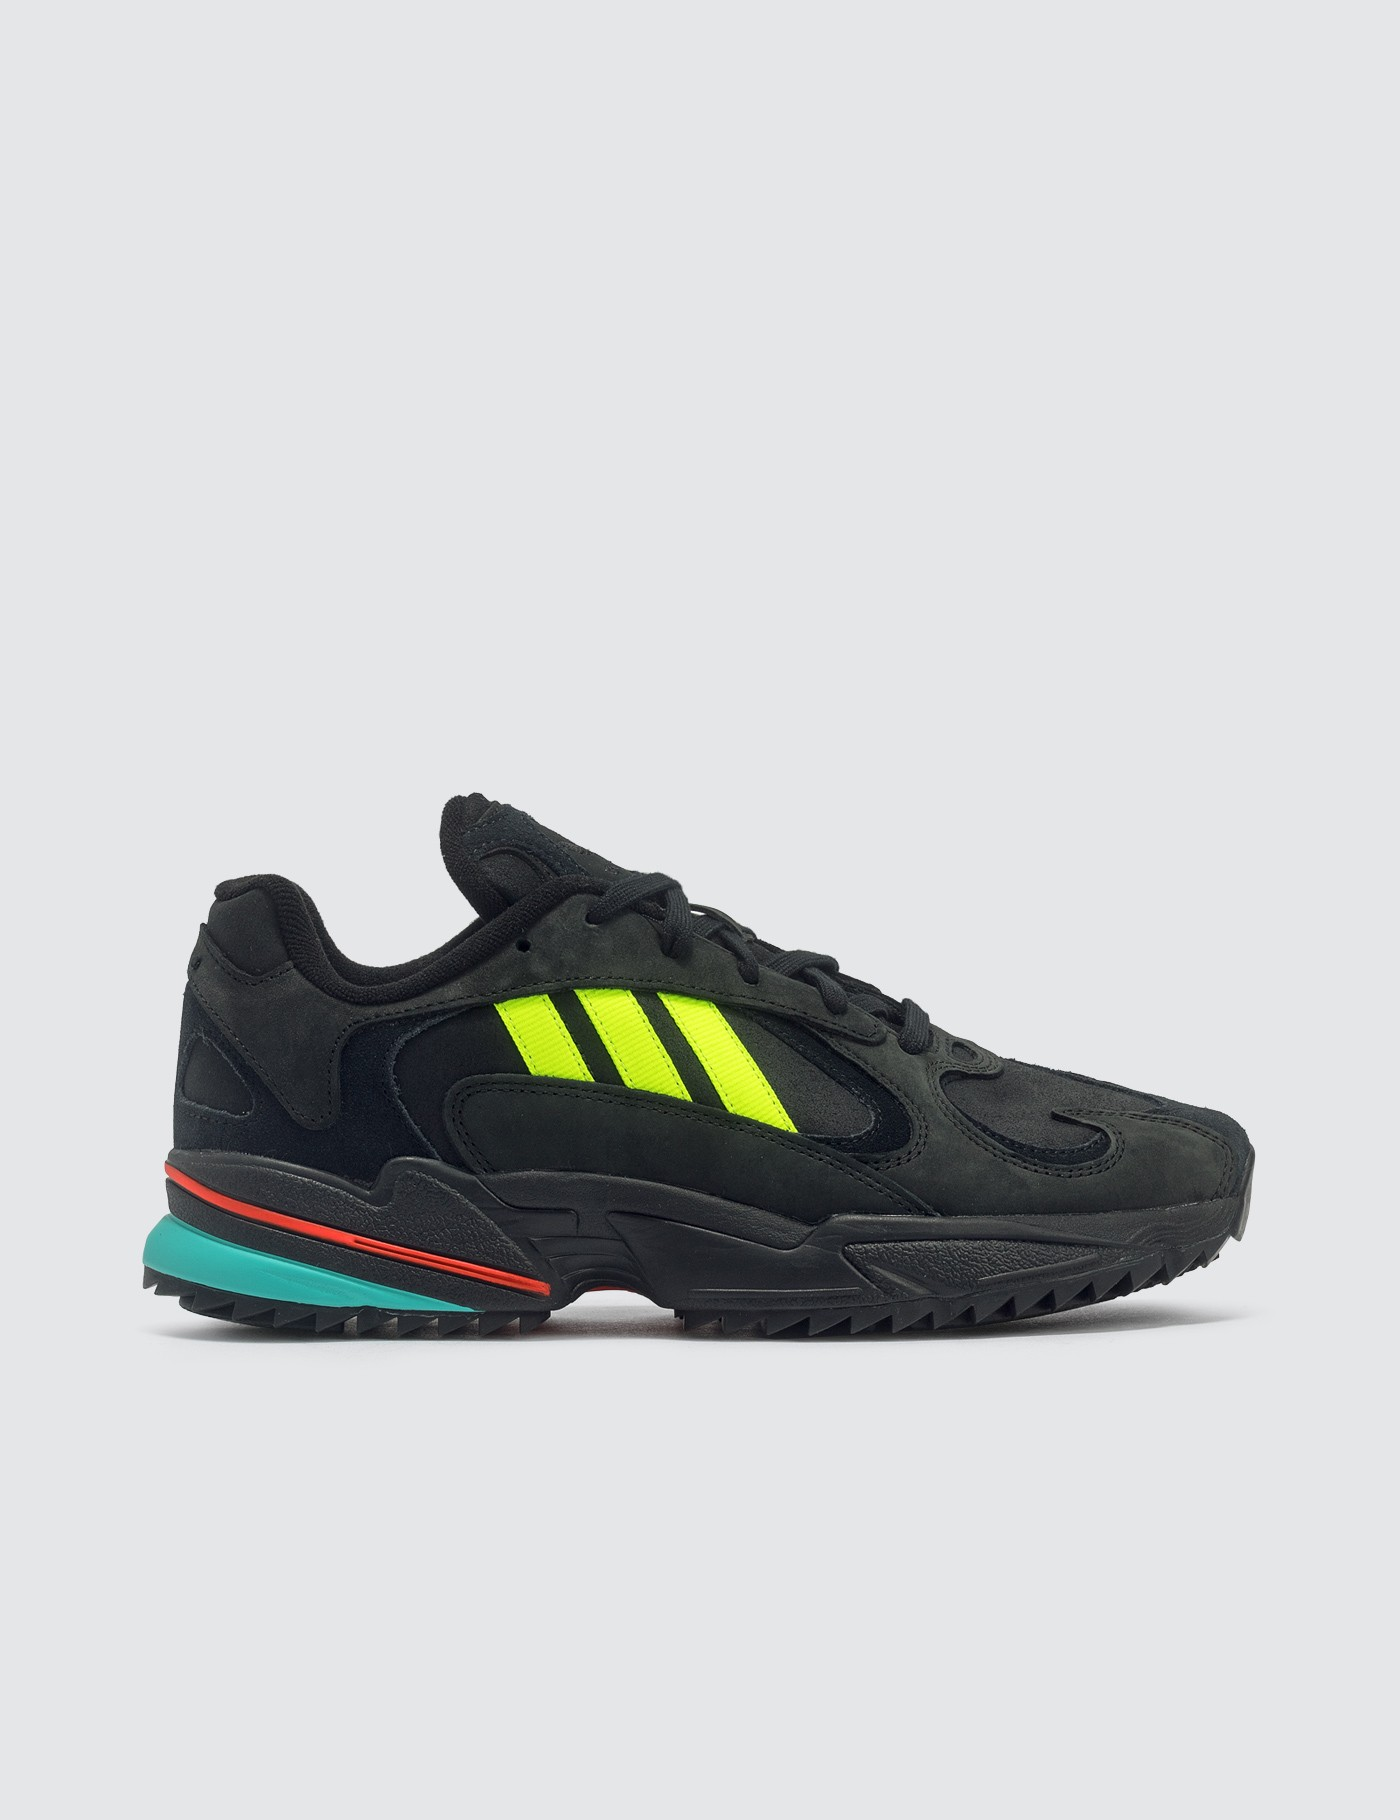 Adidas Originals Yung-1 Trail